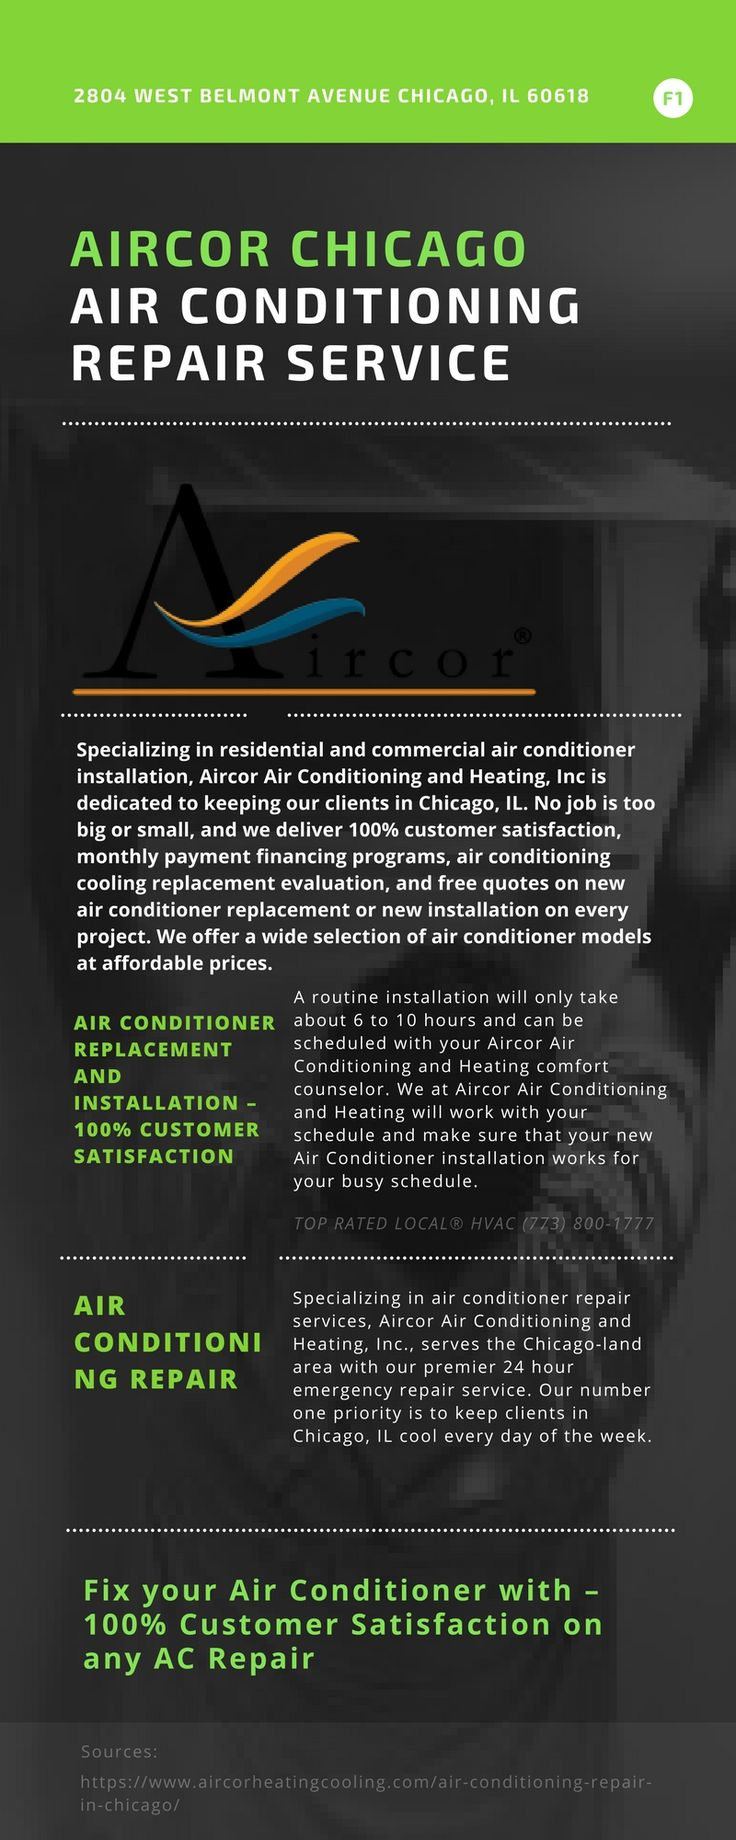 Aircor chicago air conditioning repaair services wants you to enjoy the comfort and peace of mind